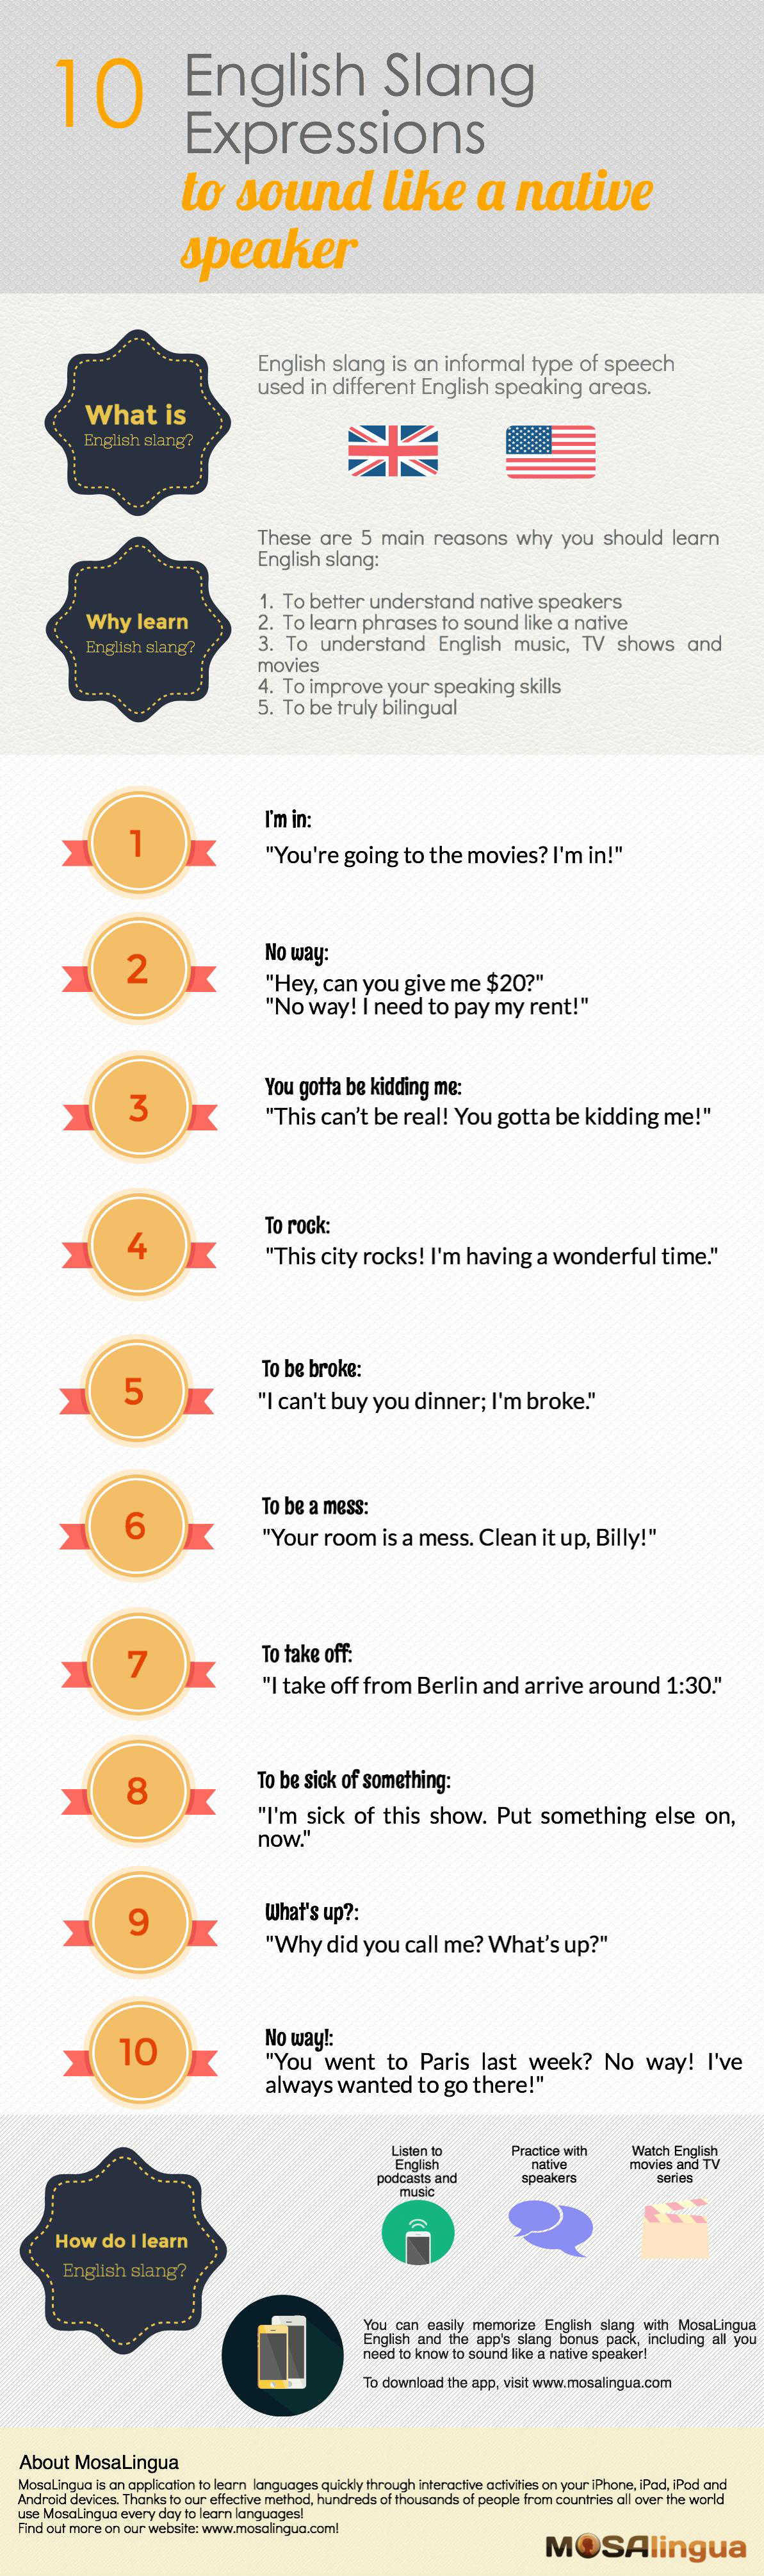 10 English Slang Expressions To Sound Like A Native